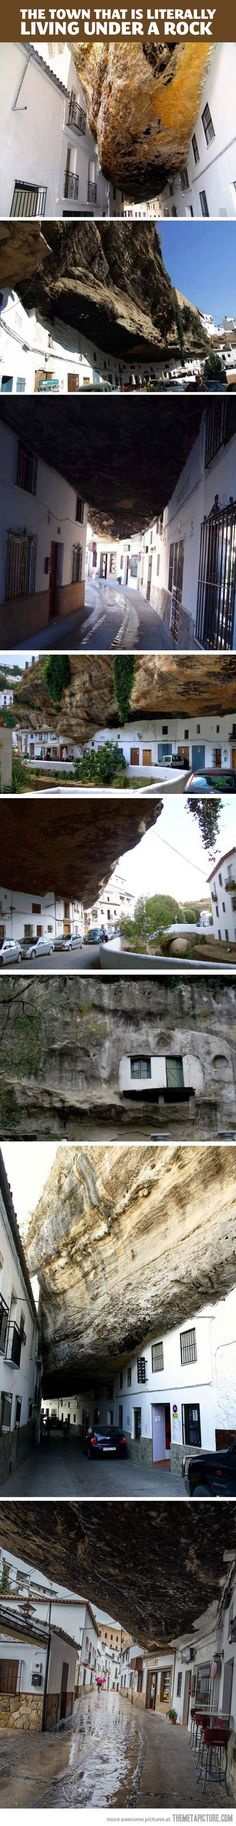 The town that is literally living under a rock on http://seriouslyforreal.com/seriously-for-real/the-town-that-is-literally-living-under-a-rock/